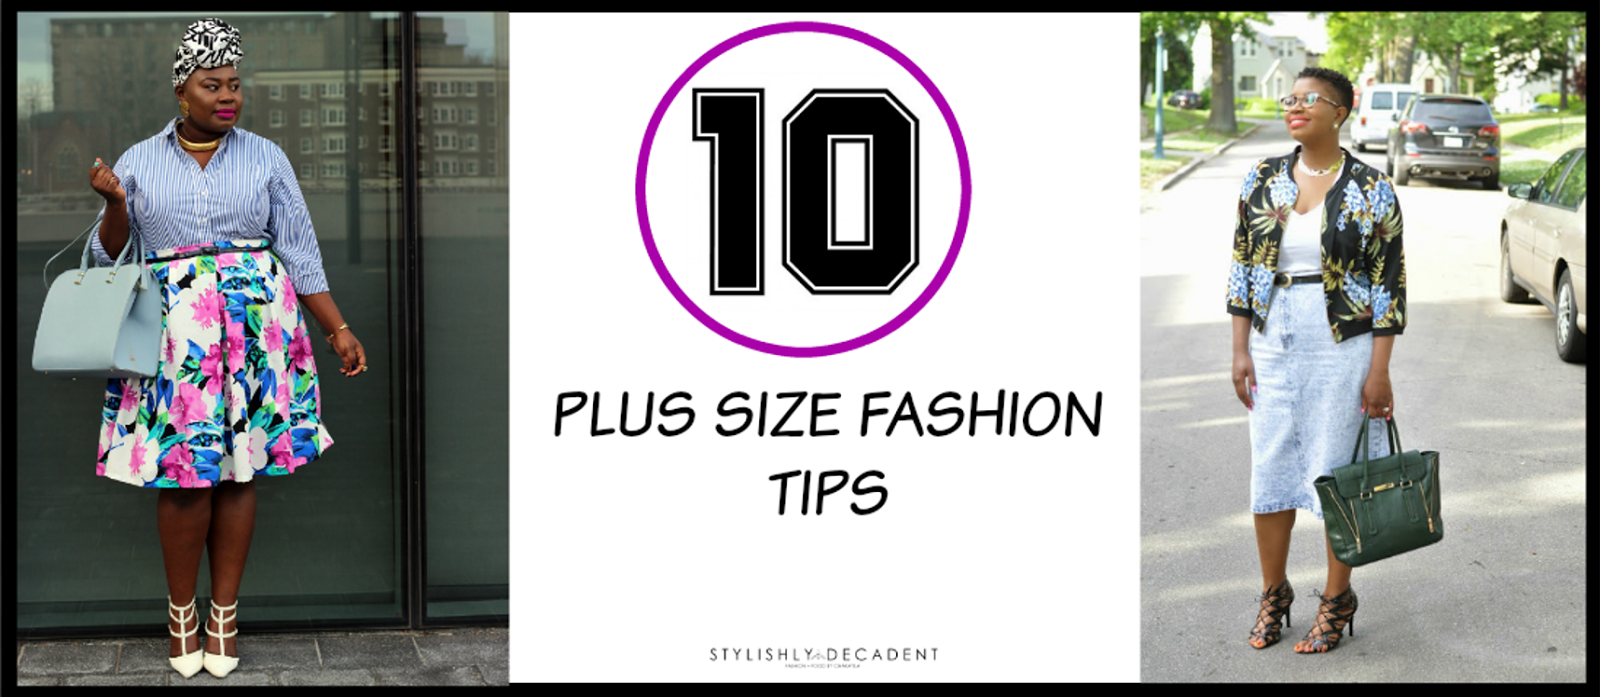 A Complete Guide Featuring Plus Size Fashion Tips